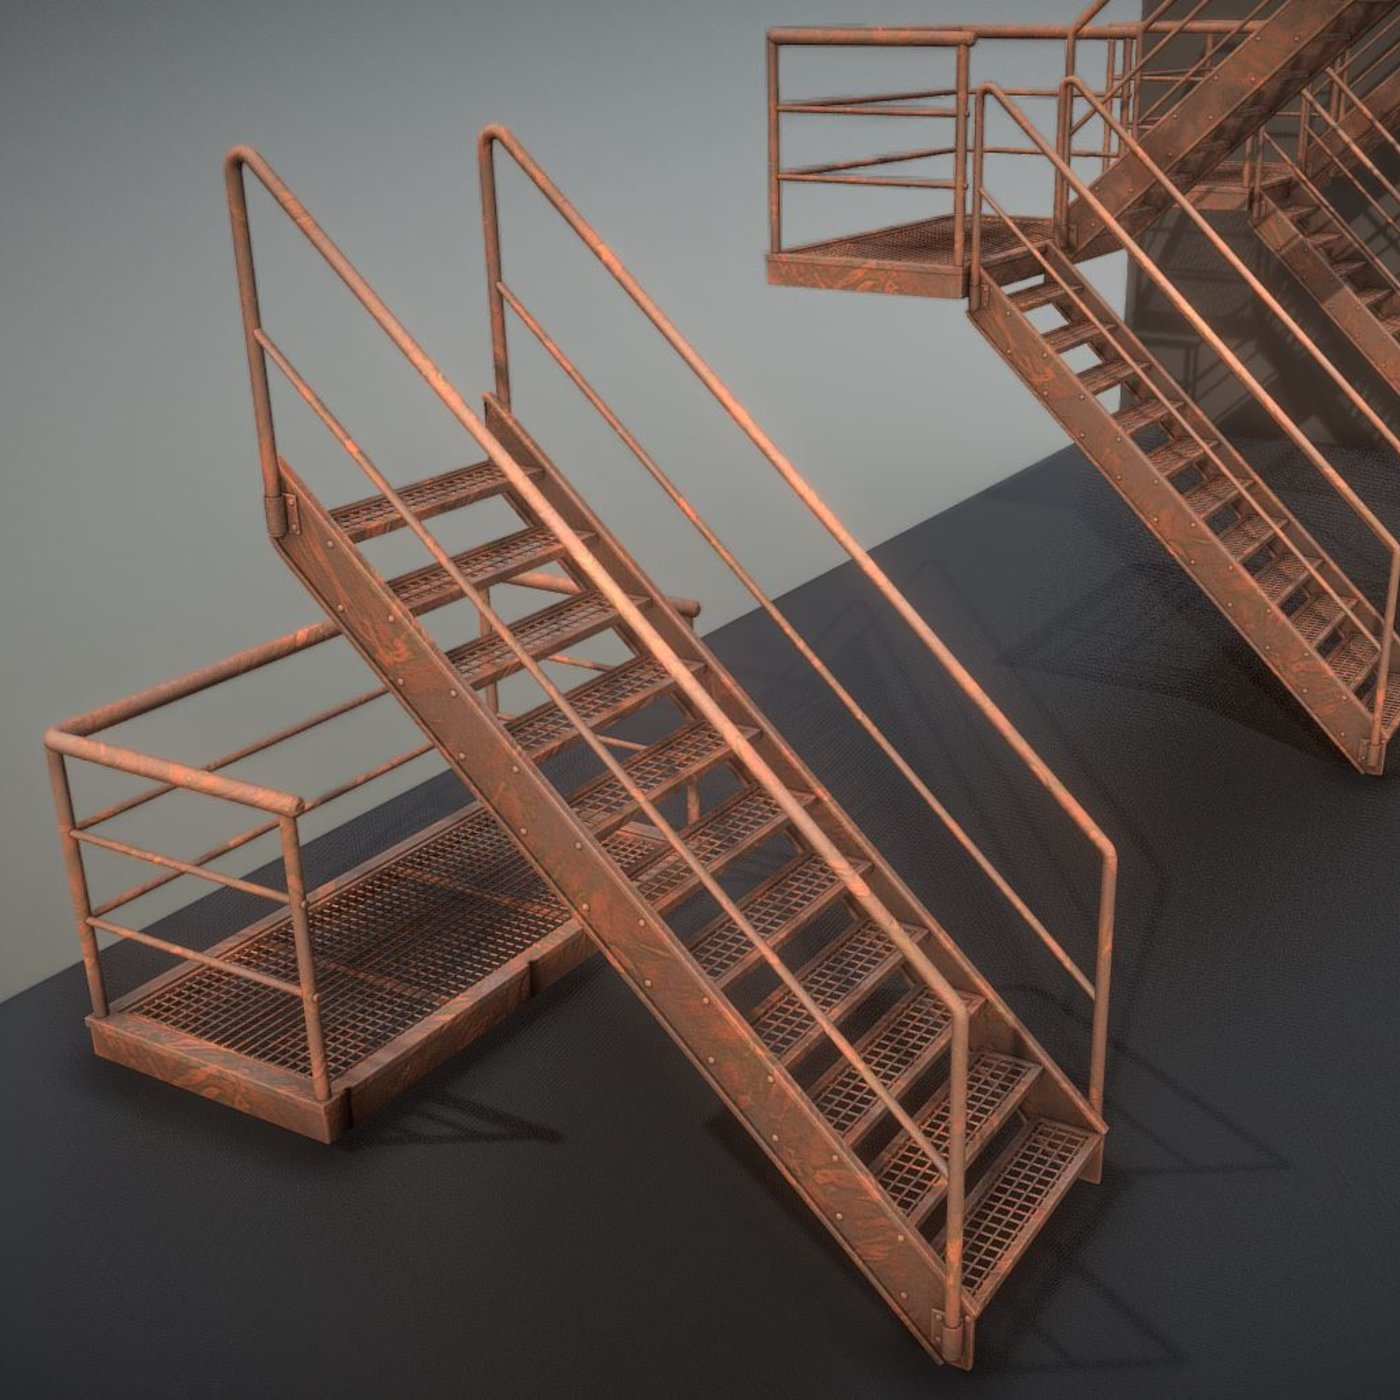 Modular Industrial Staircase Rusted Version (High-Poly)